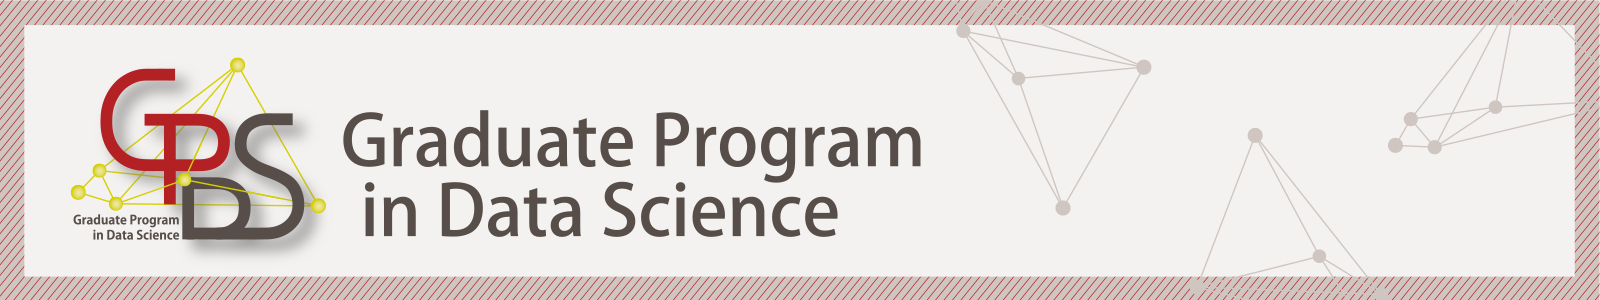 Graduate Program in Data Science